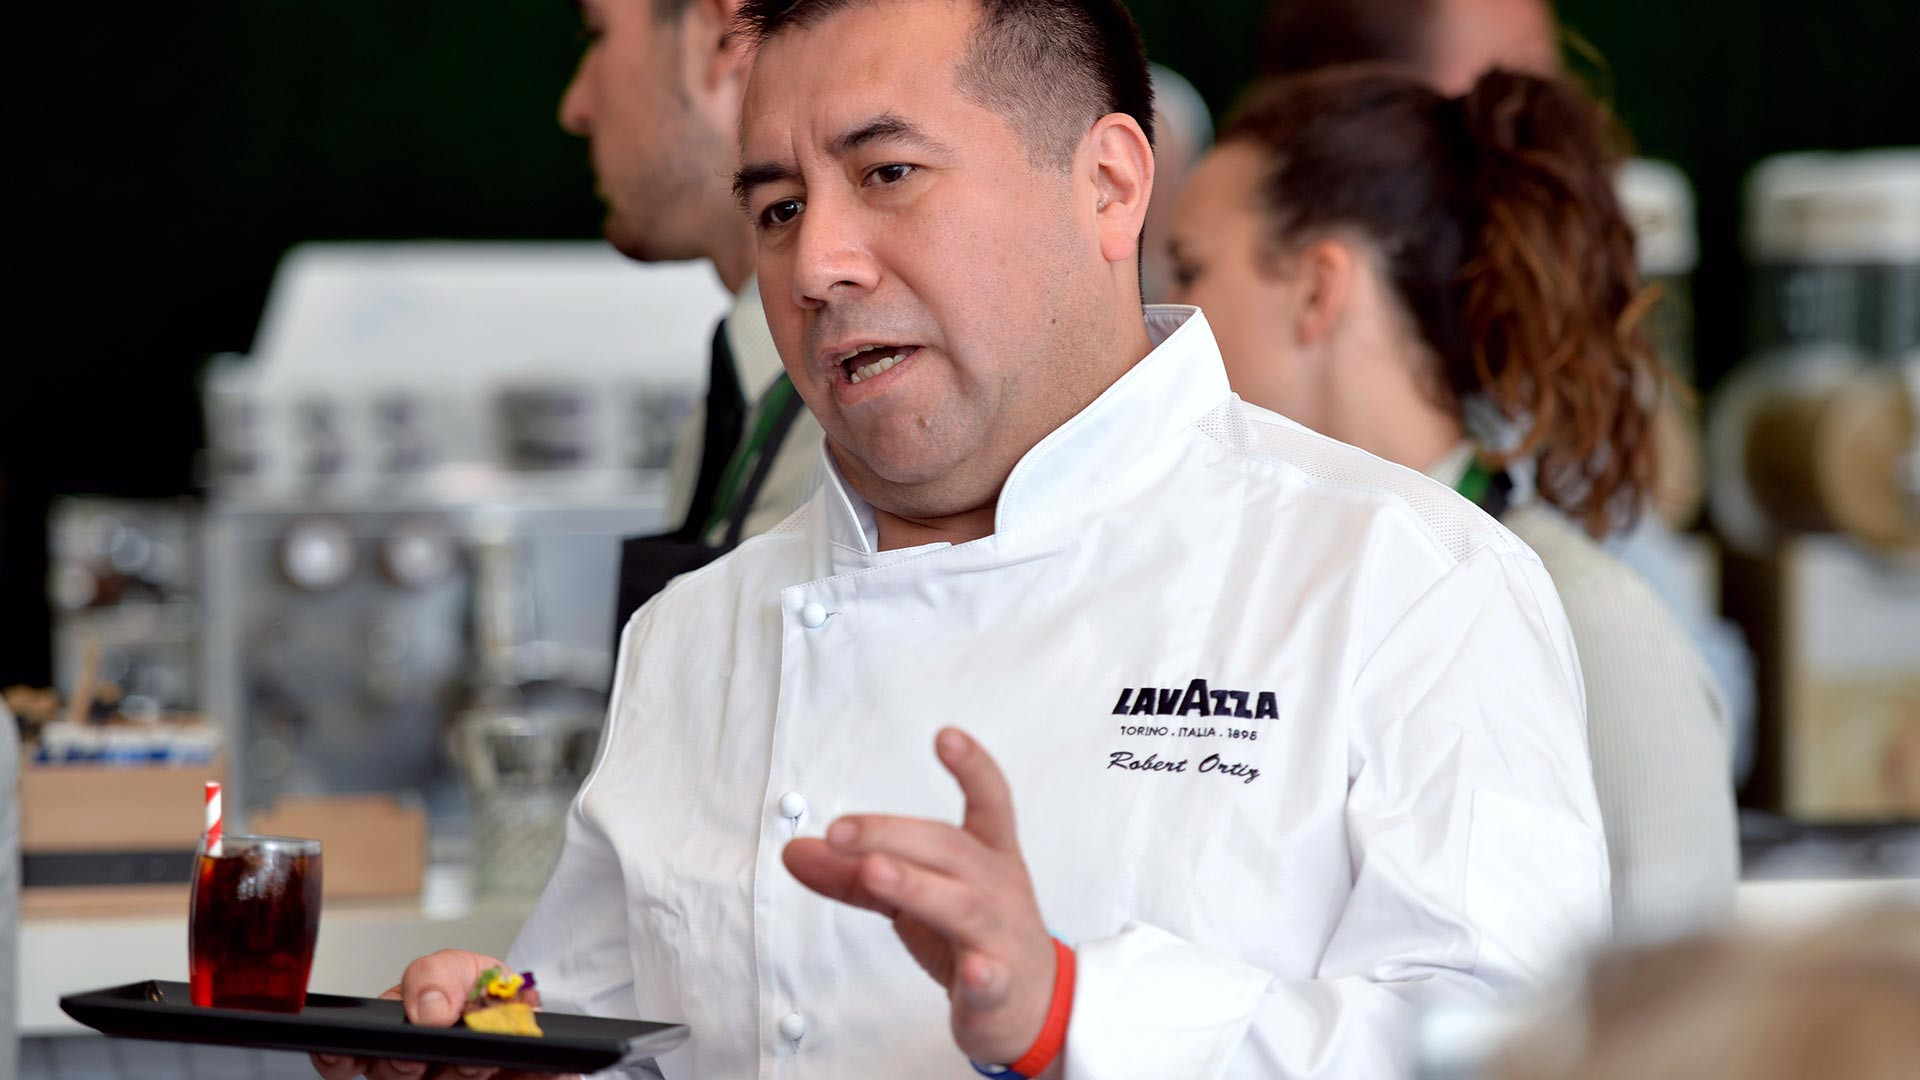 Robert Ortiz introduces his Lavazza dish at Wimbledon 2017